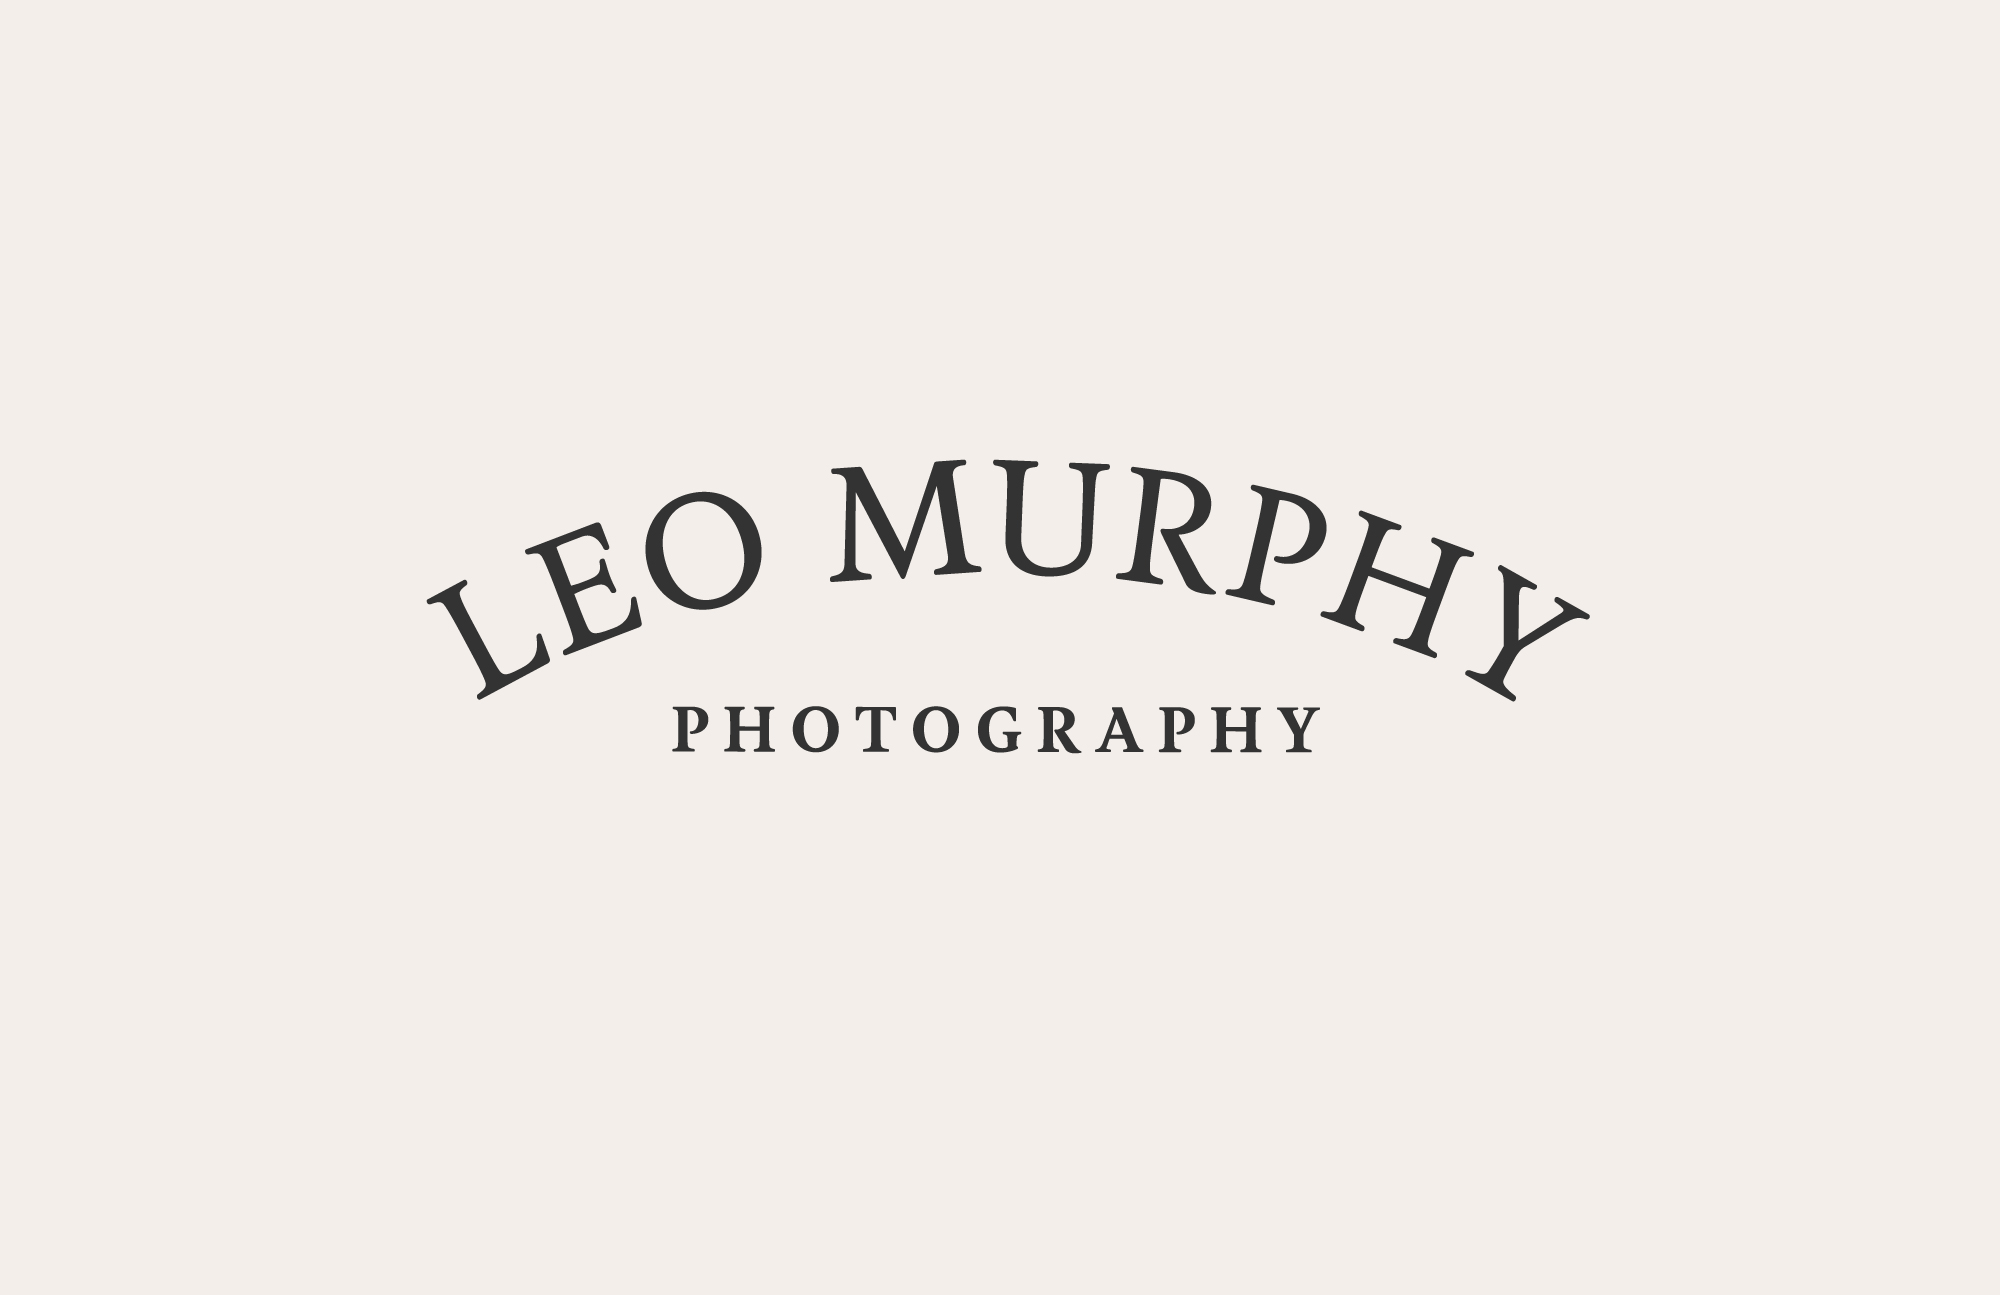 Cover image: Leo Murphy Photography Brand Identity and Website